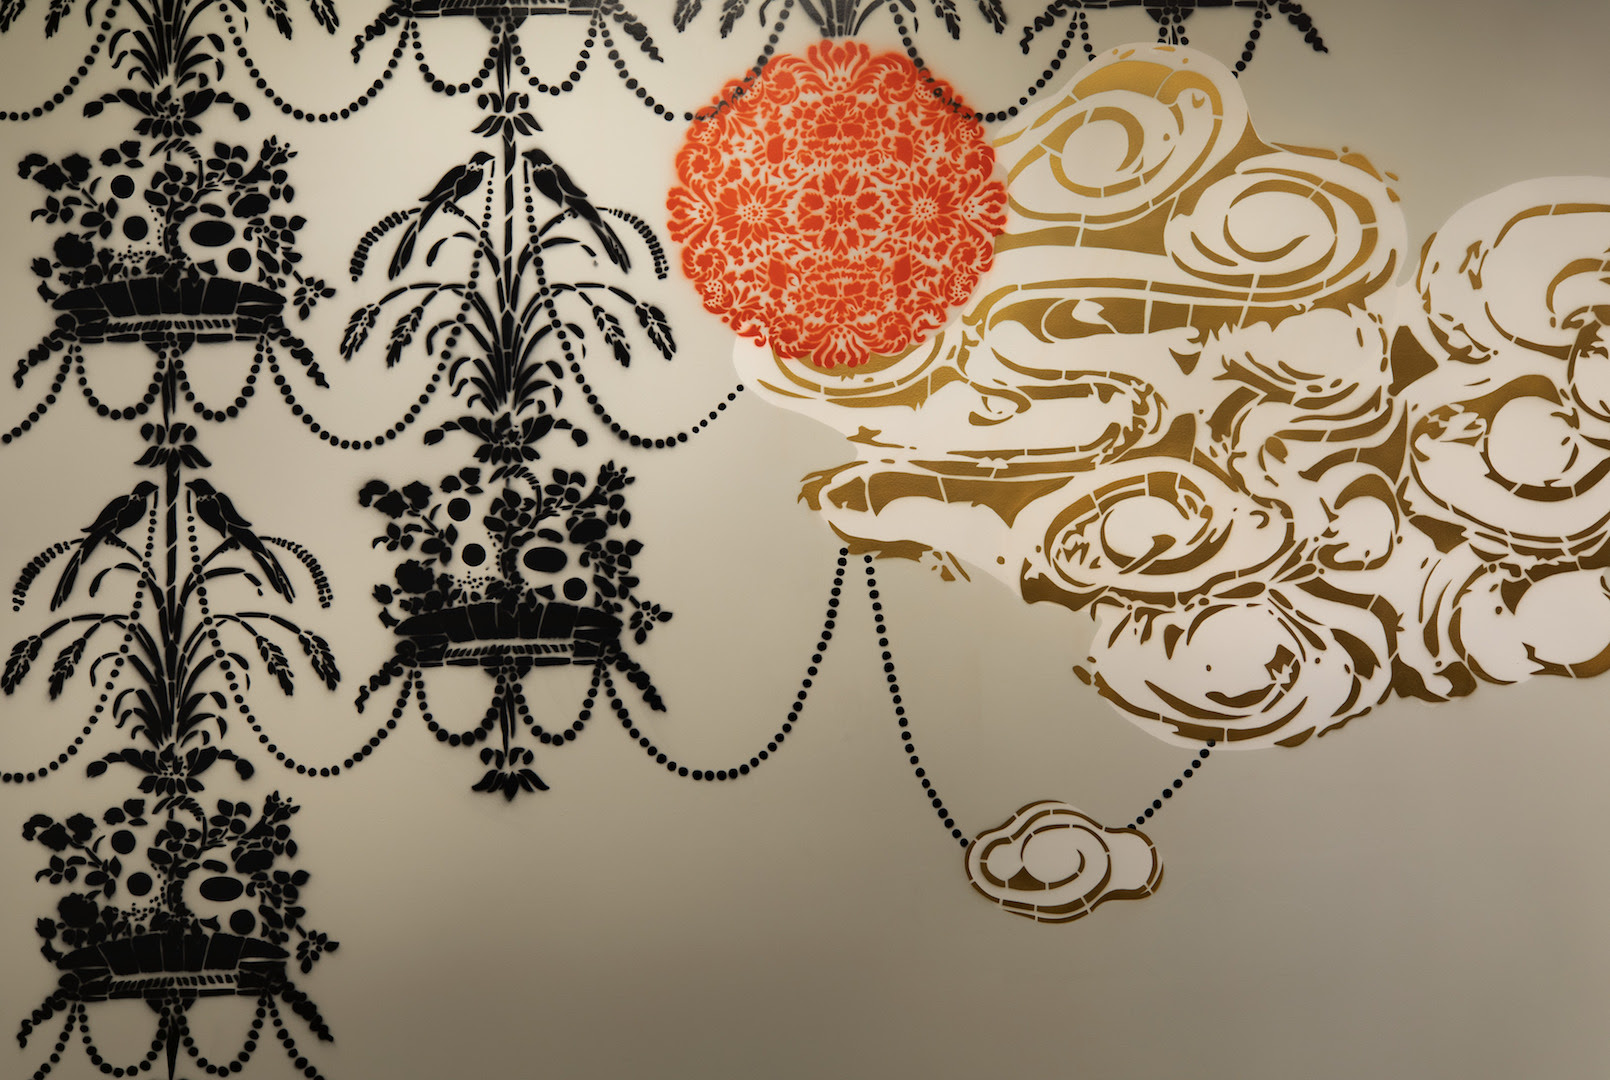 Detail from artist Vanessa Platacis installation, Taking Place. © Peabody Essex Museum. Photography by Bob Packert.